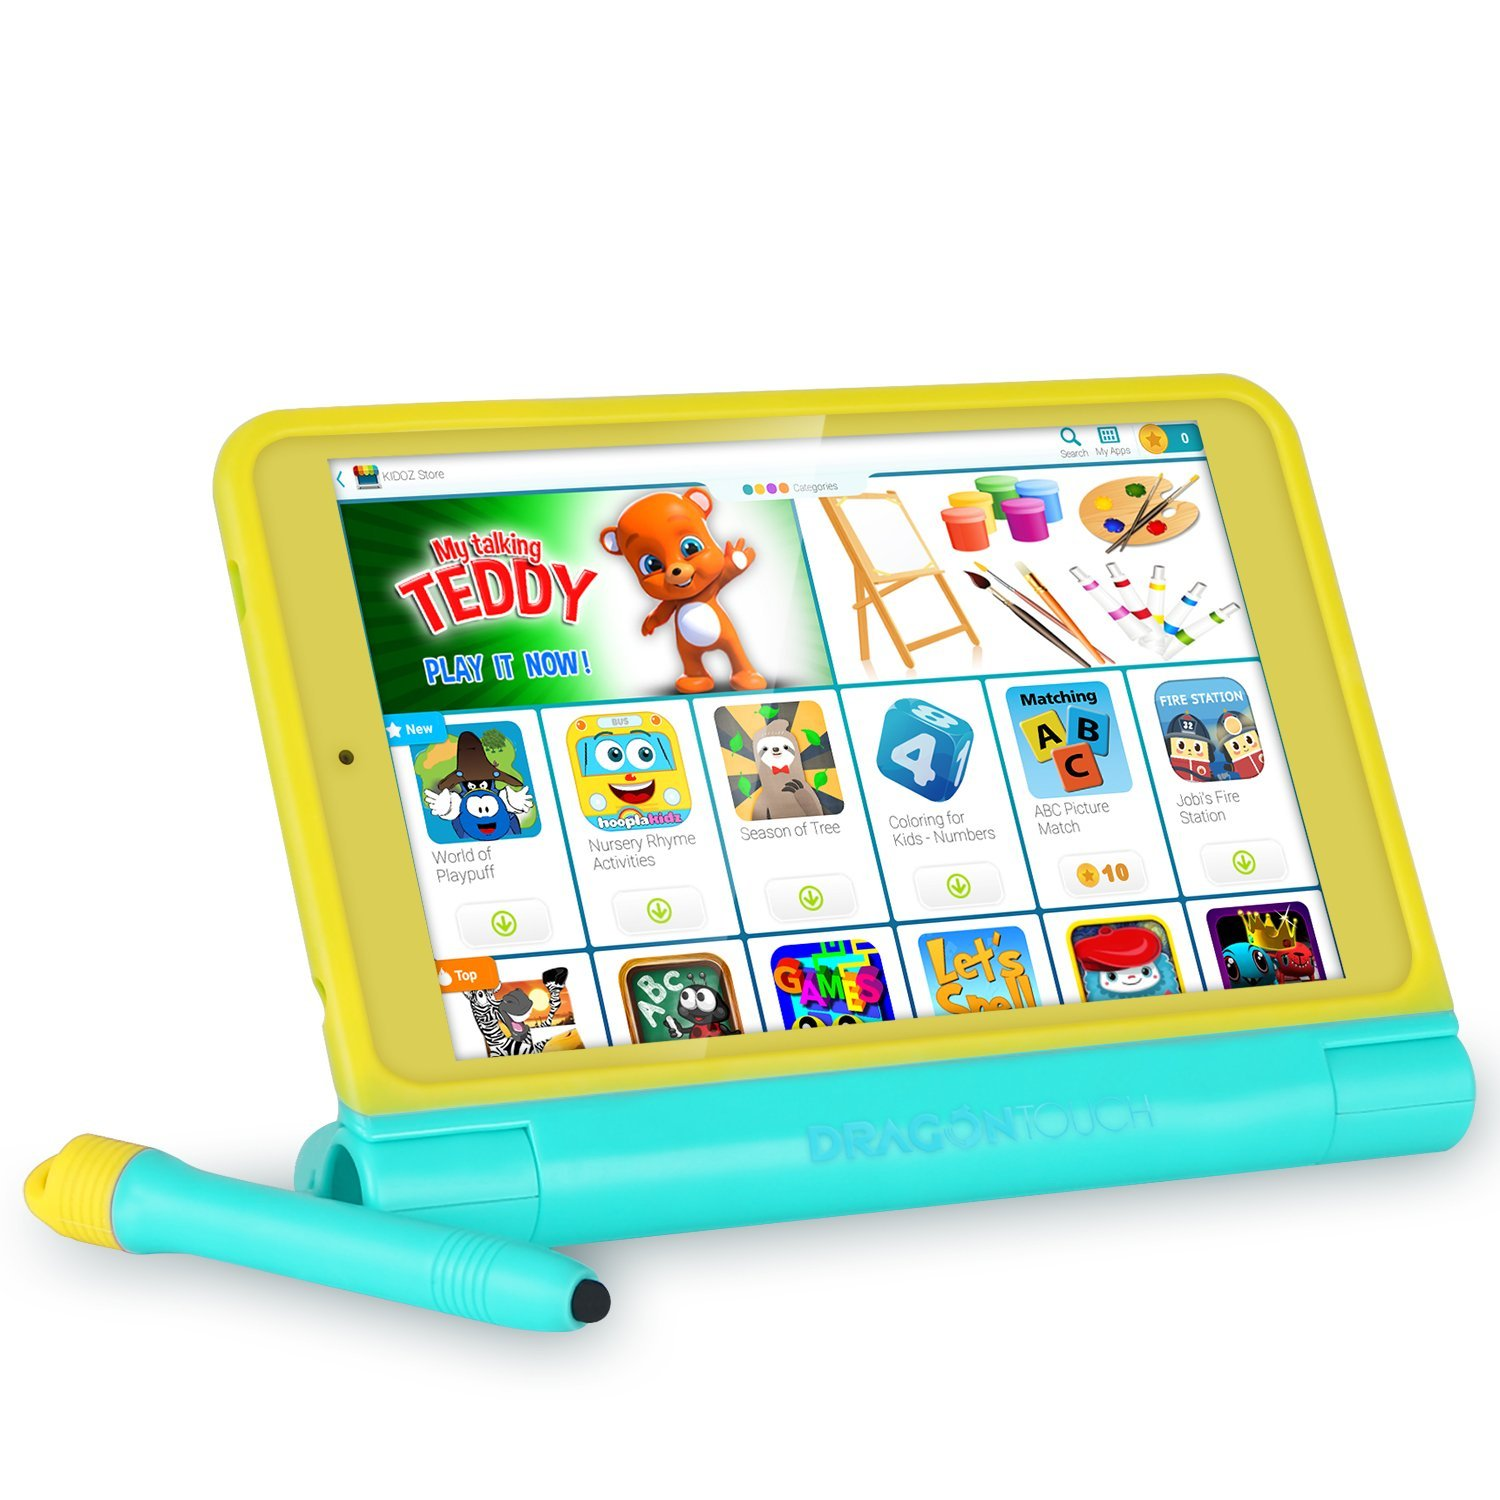 Dragon Touch K8 8inch Kids Tablet Kidoz Pre-Installed 2GB RAM 16GB ROM IPS Display Android 6.0 Marshmallow Android Tablet 8 inch kids quad core tablet kidoz pre installed 2gb ram 16gb rom 1280 800 ips display android 6 0 marshmallow android tablet